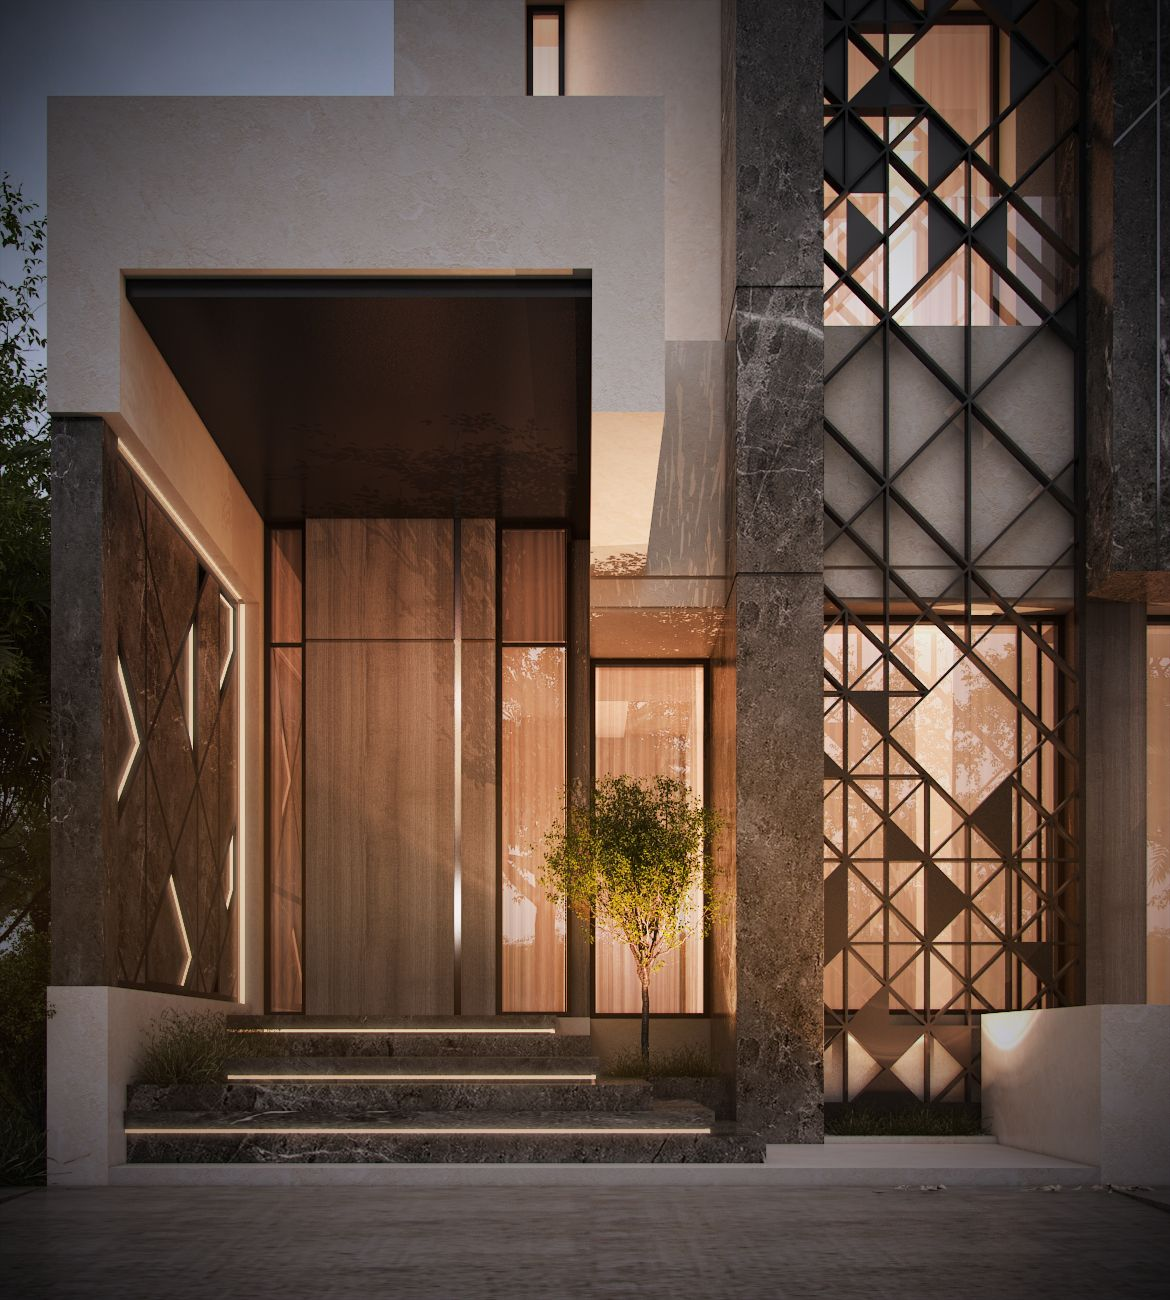 Private Villa Sarah Sadeq Architects Kuwait: 500 M Private Villa Kuwait Sarah Sadeq Architects